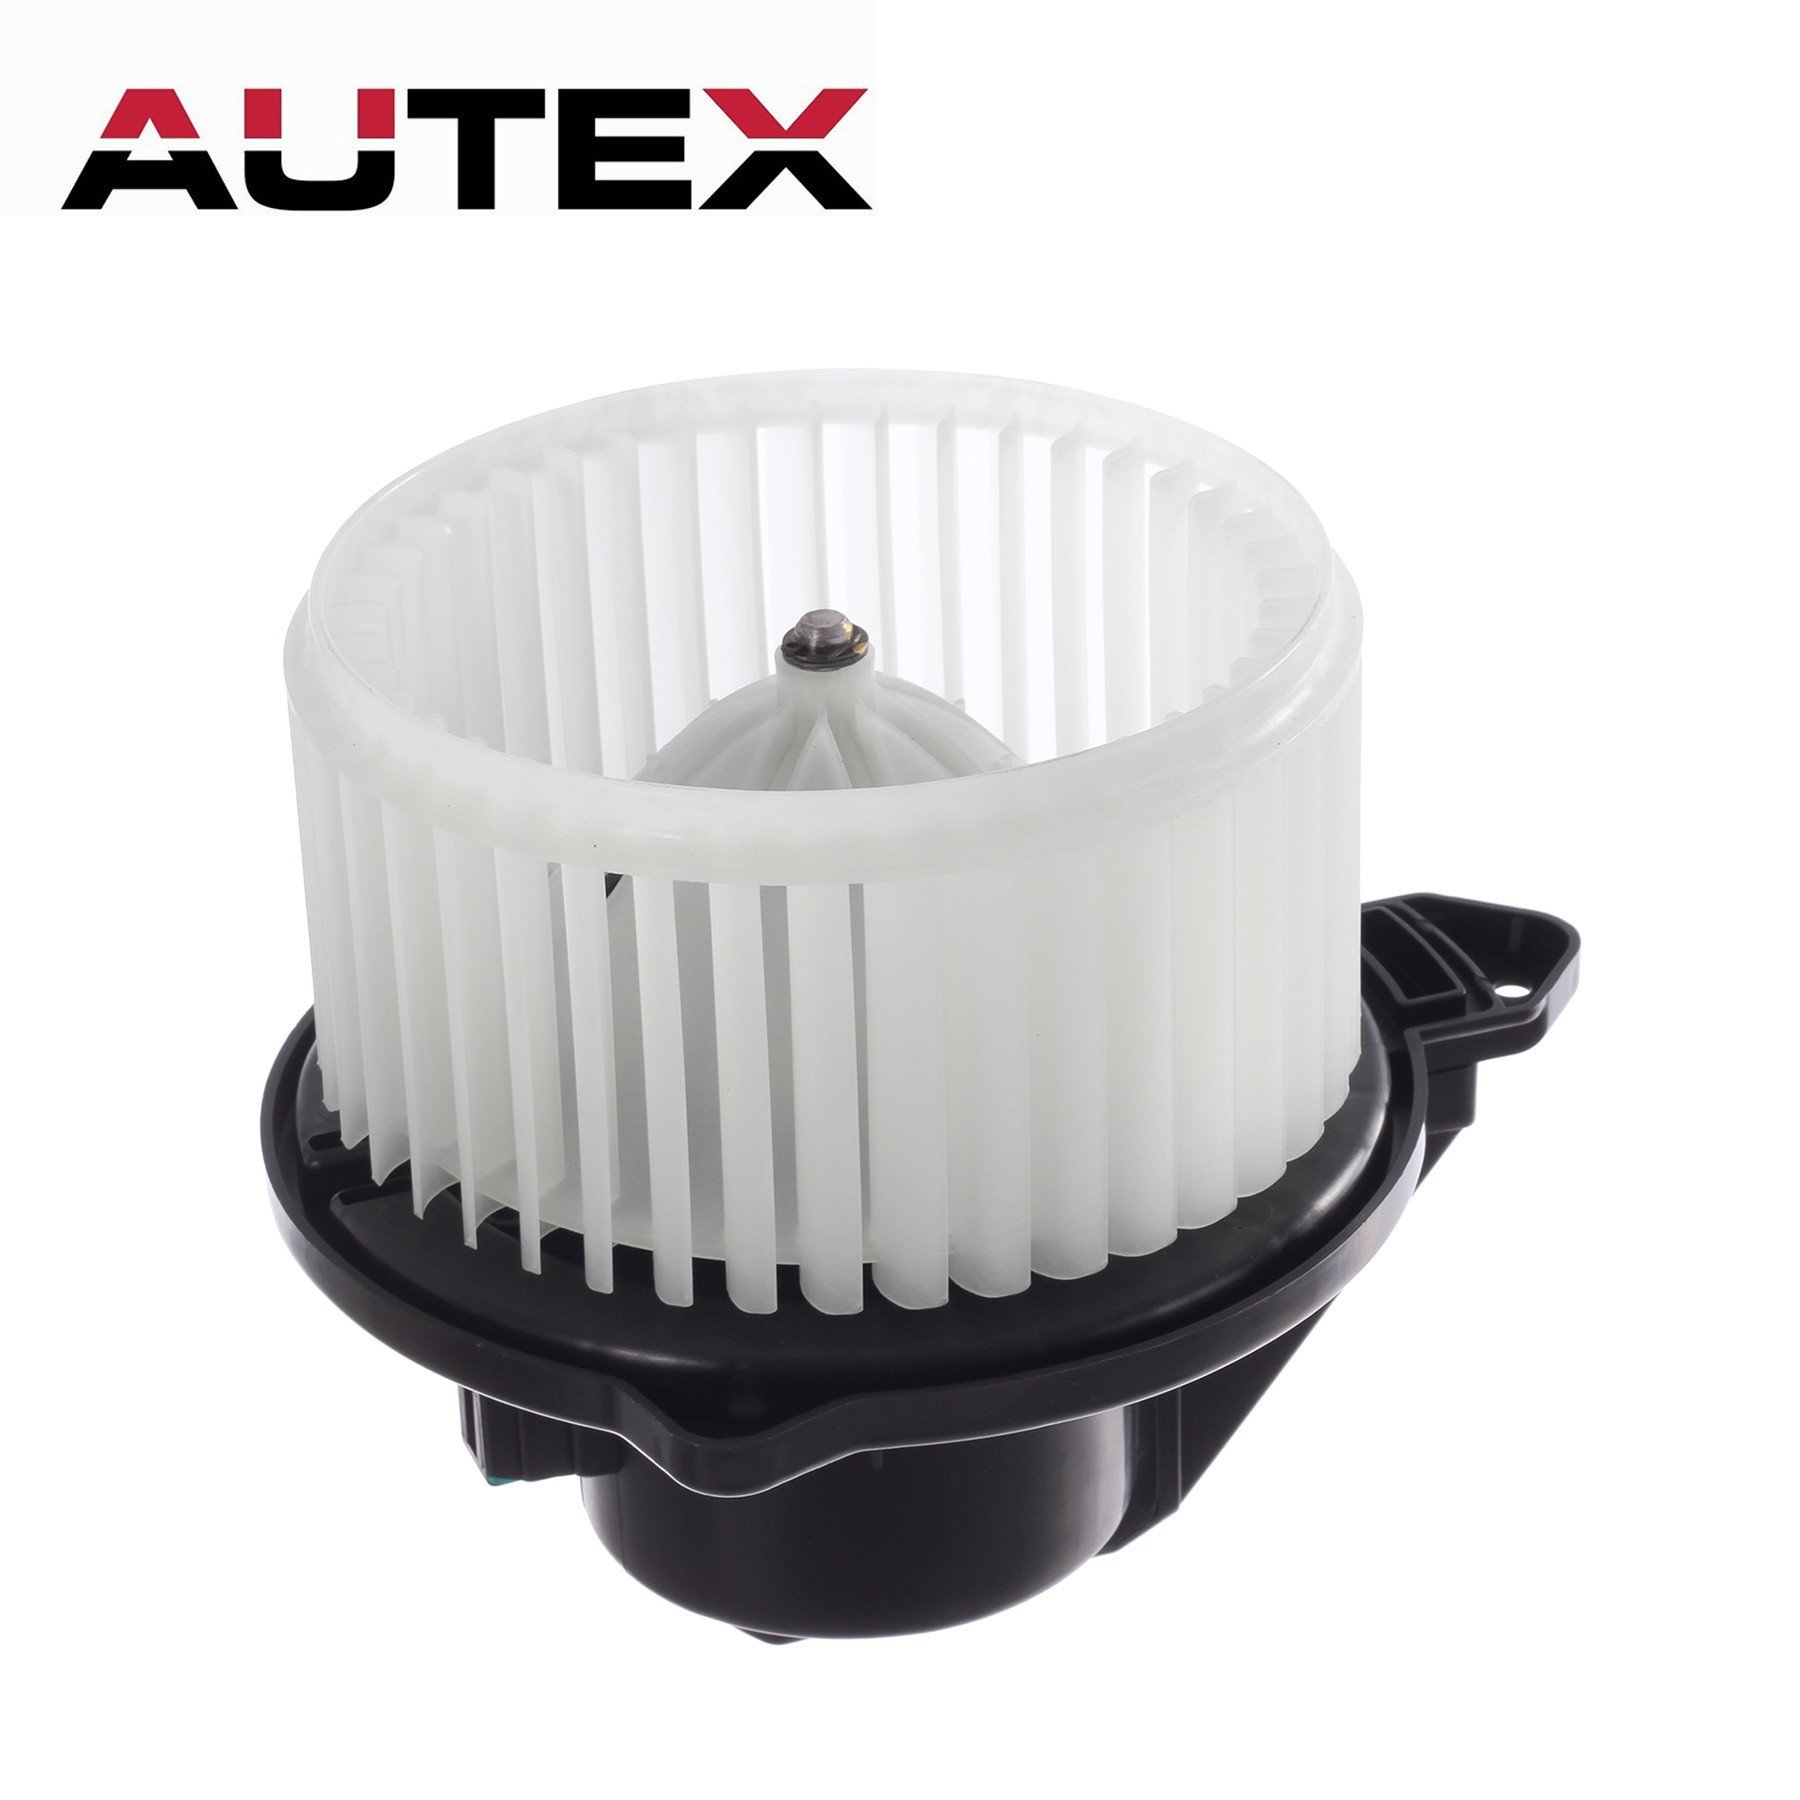 AUTEX HVAC Blower Motor Assembly 700012 Replacement for 2003 2004 2005 2006 2007 2008 2009 Dodge Ram 1500 2500 3500 Truck 2009 2010 Dodge Ram 4500 5500 Truck 2002 2003 2004 Jeep Grand Cherokee